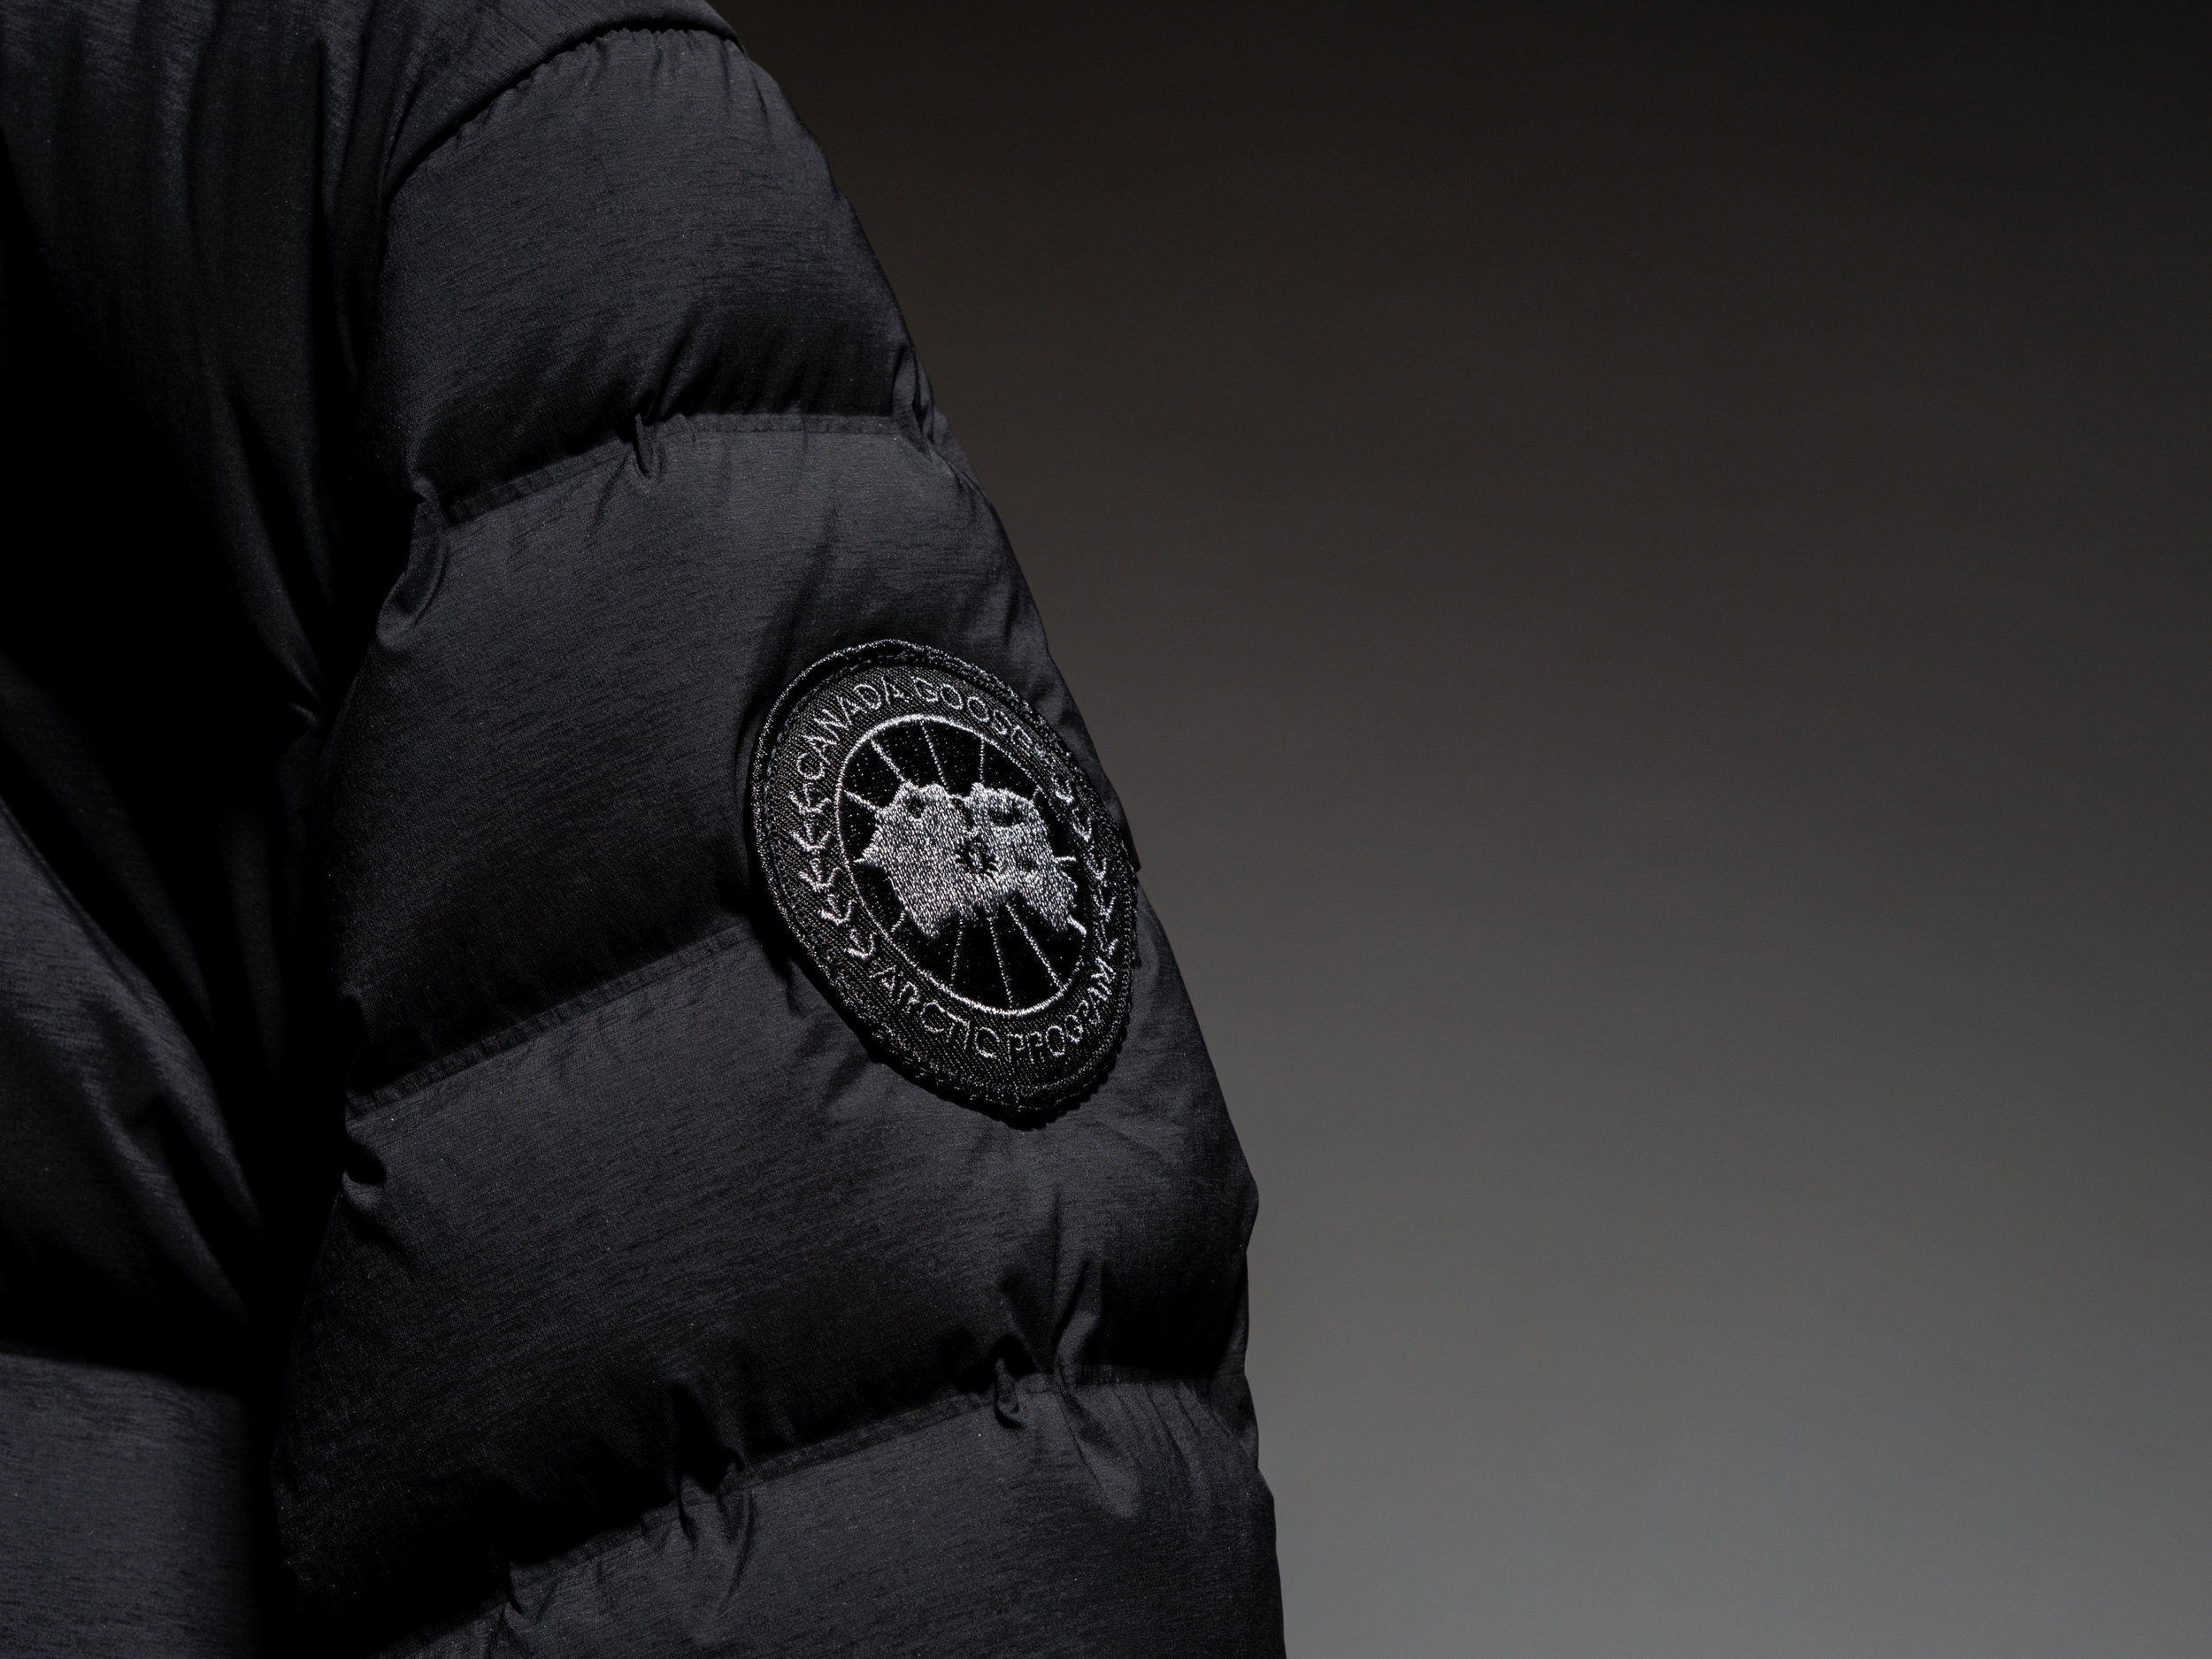 Canada Goose Hybridge CW and Photojournalist Jackets    VIEW THIS FEATURE